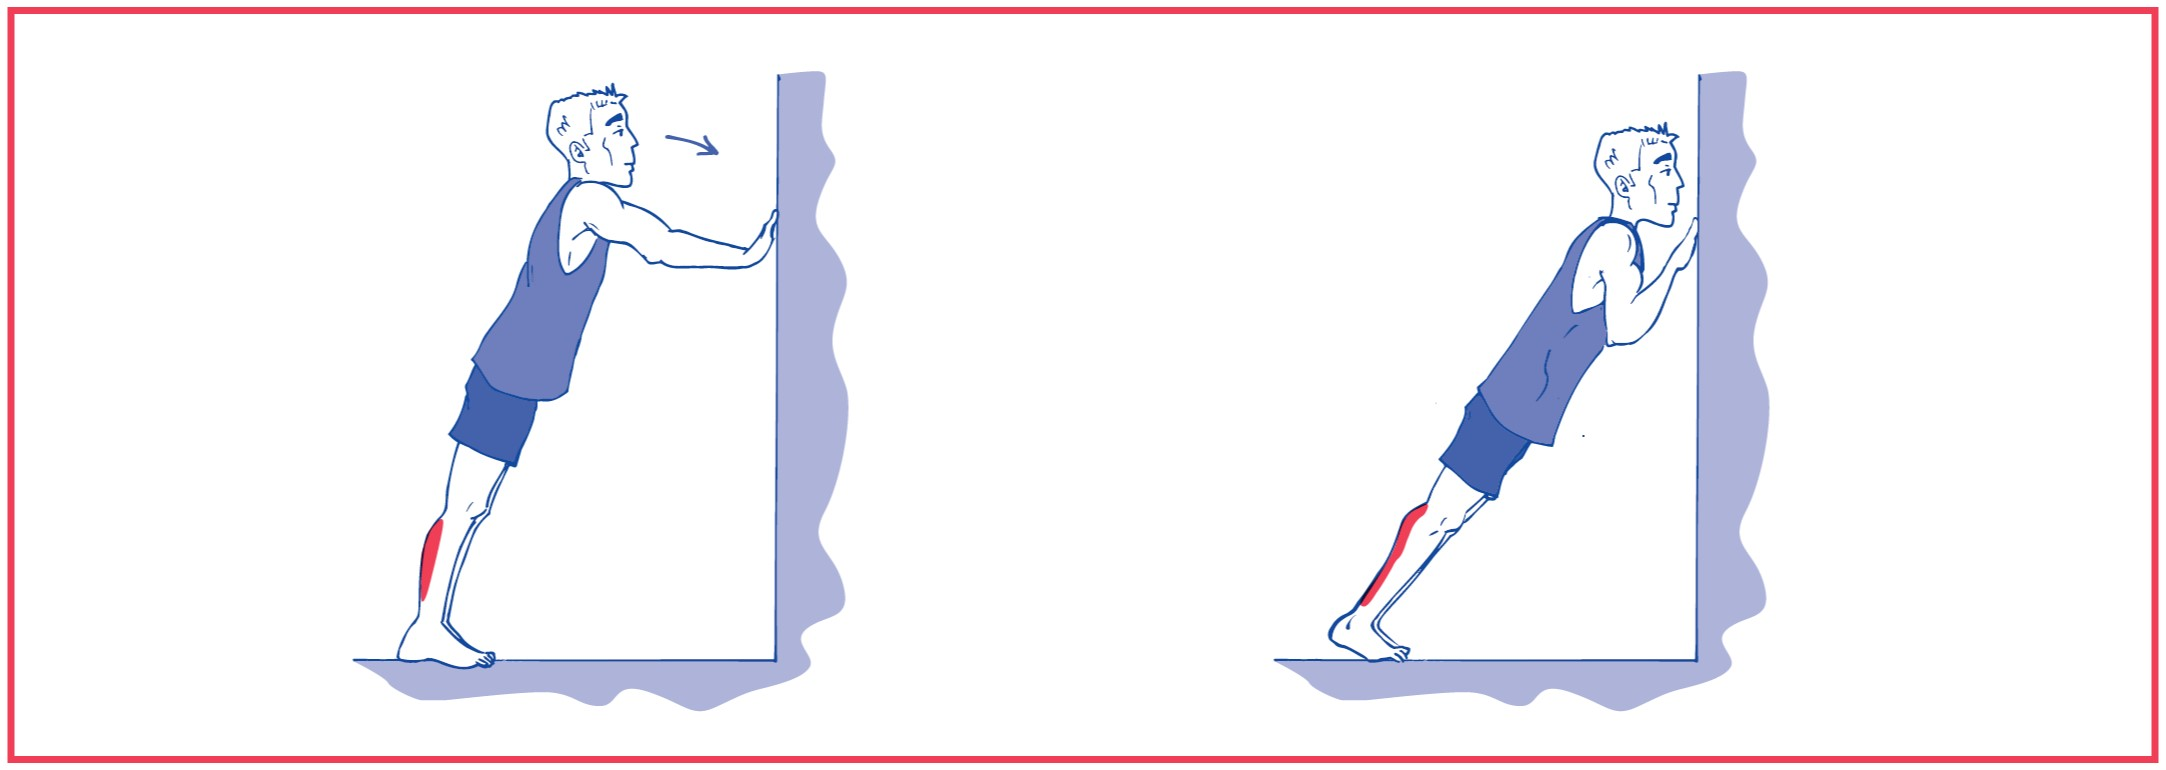 7. Stretching exercise for calf muscle #2